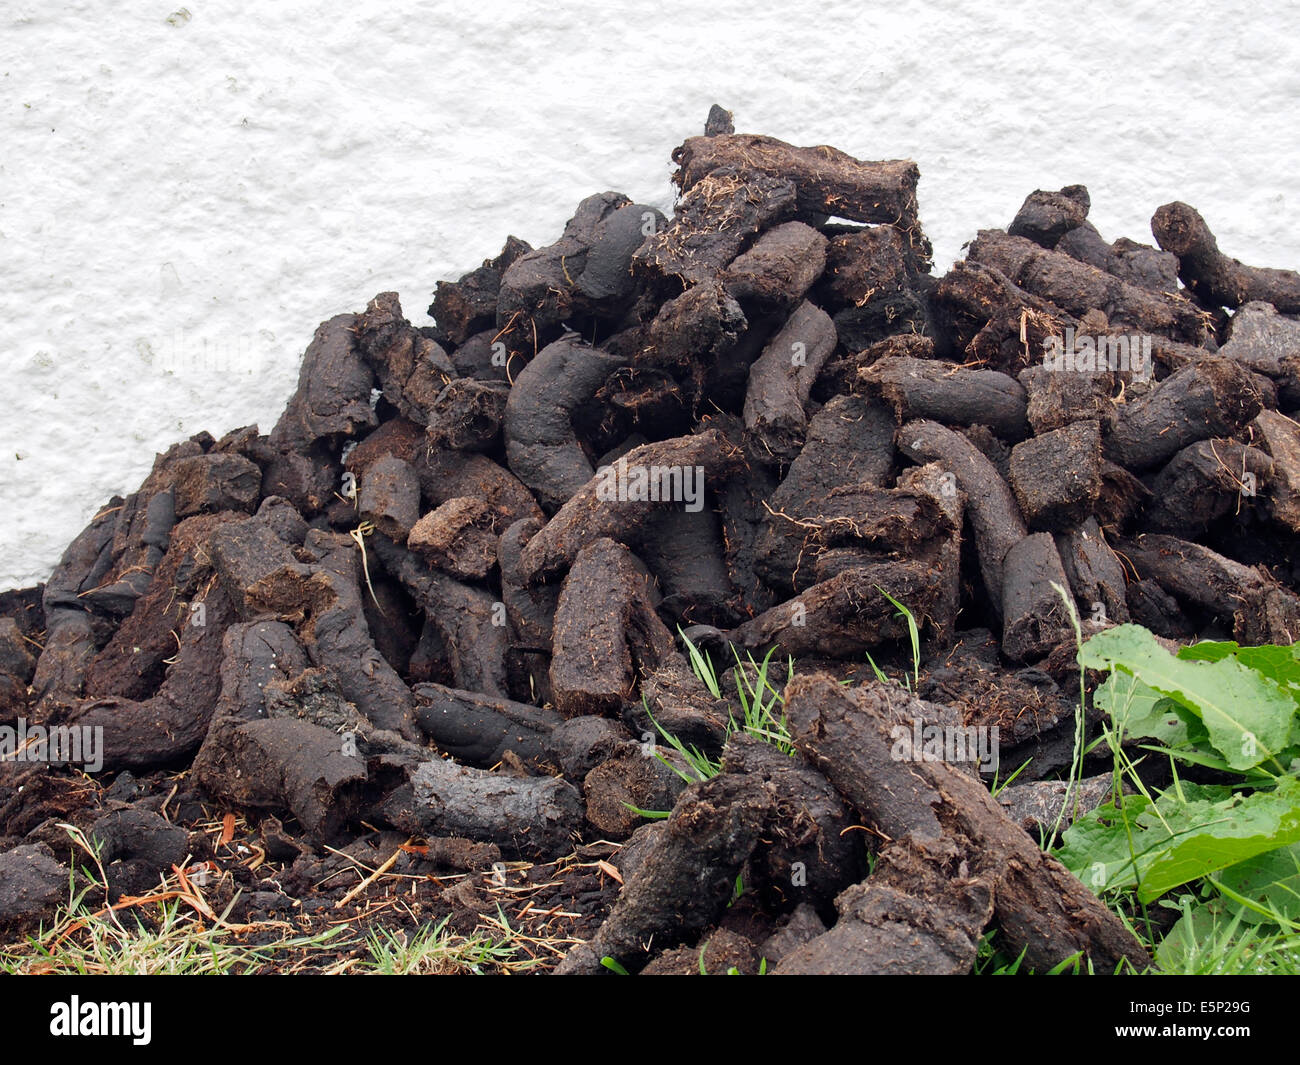 A pile of peat (turf) for fuel piled outside a while painted traditional Irish cottage. - Stock Image